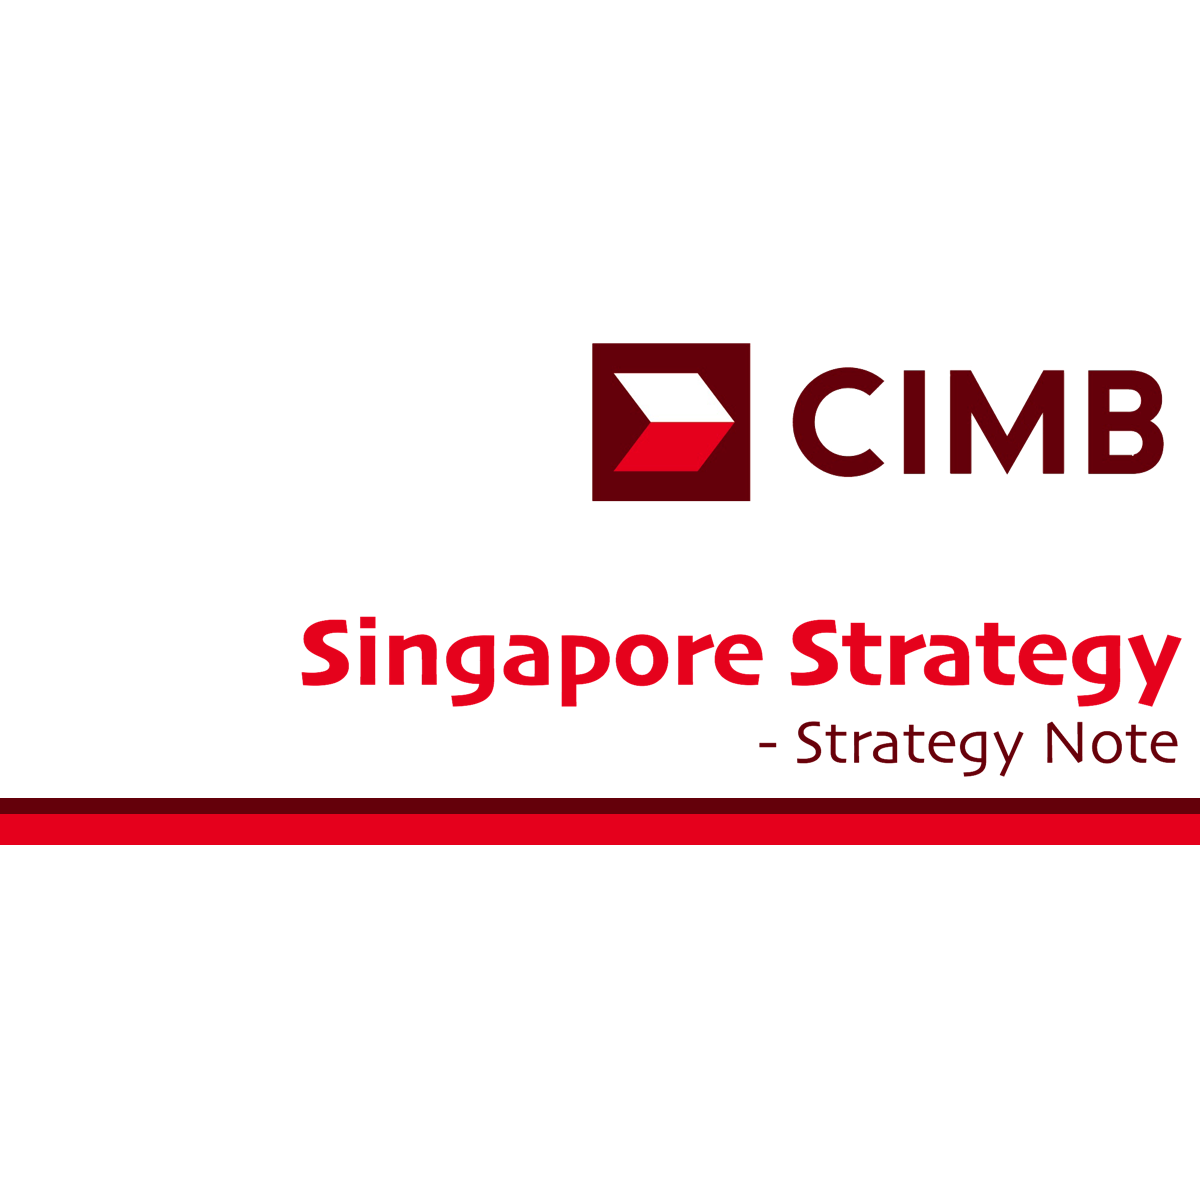 Singapore Strategy - CIMB Research 2017-10-13: Singapore Slings Up